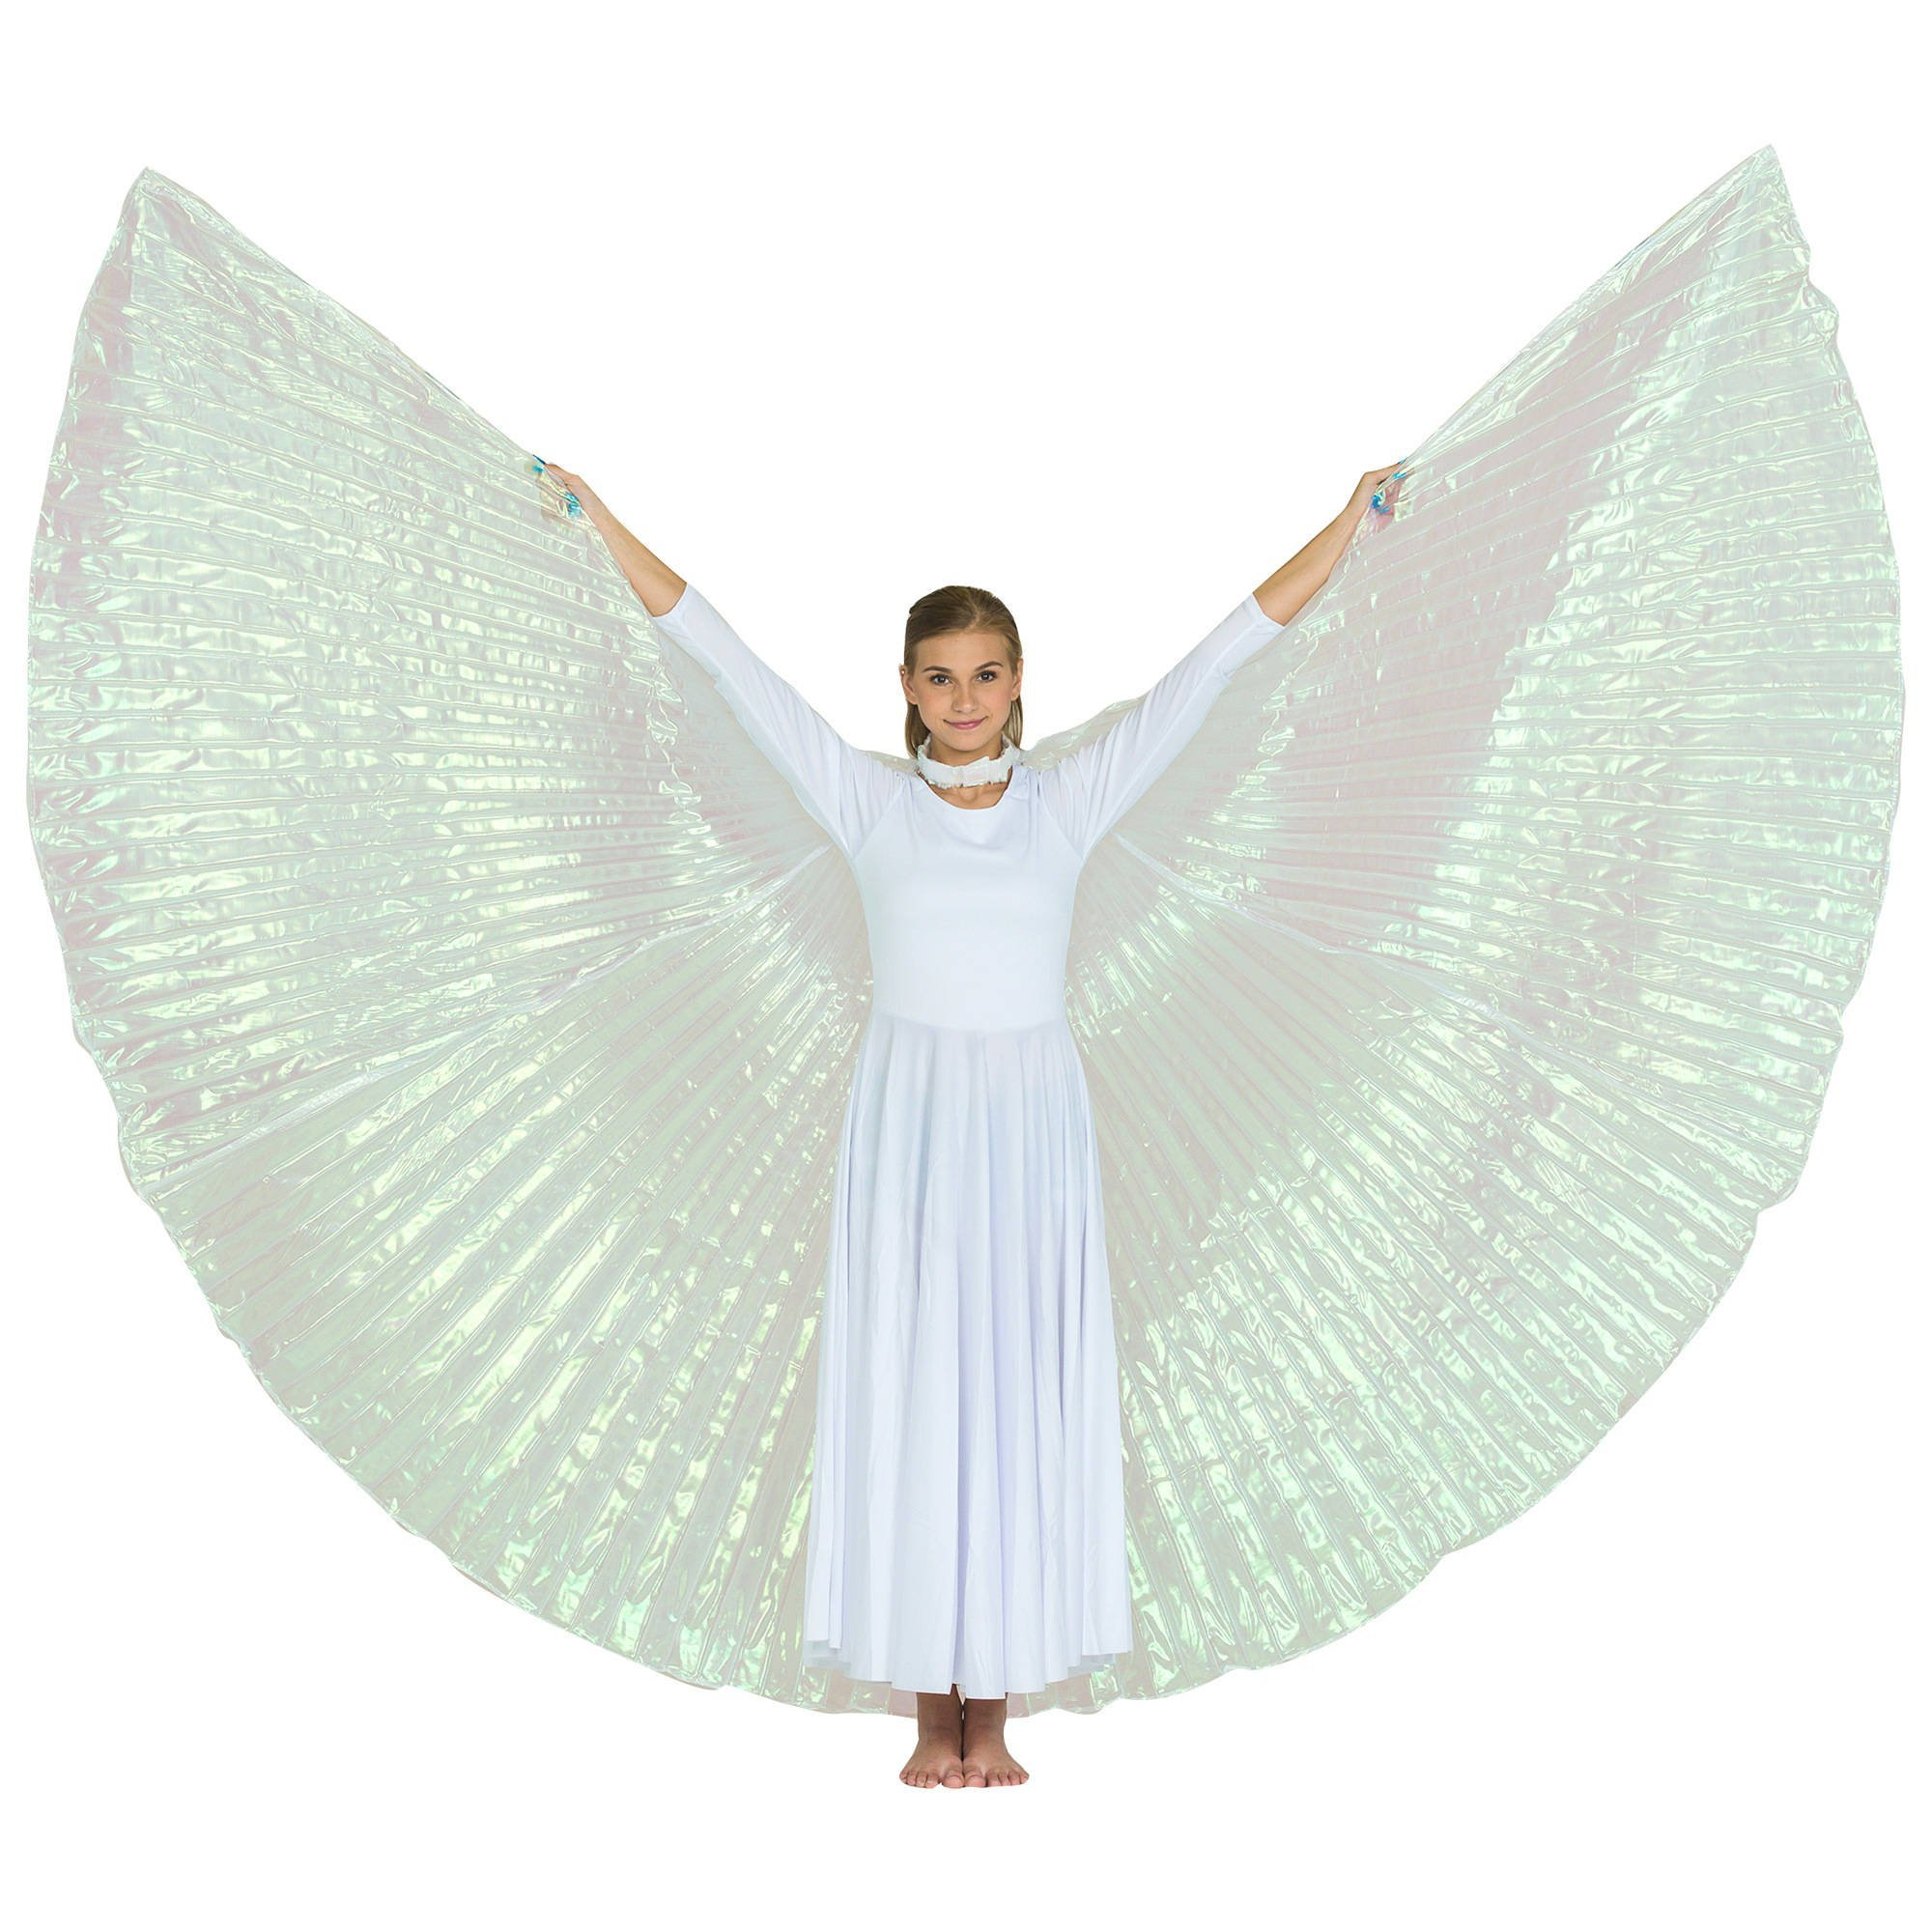 2-pc Set Danzcue Praise Full Length Long Sleeve Dance Dress Iridescent Angel Wing